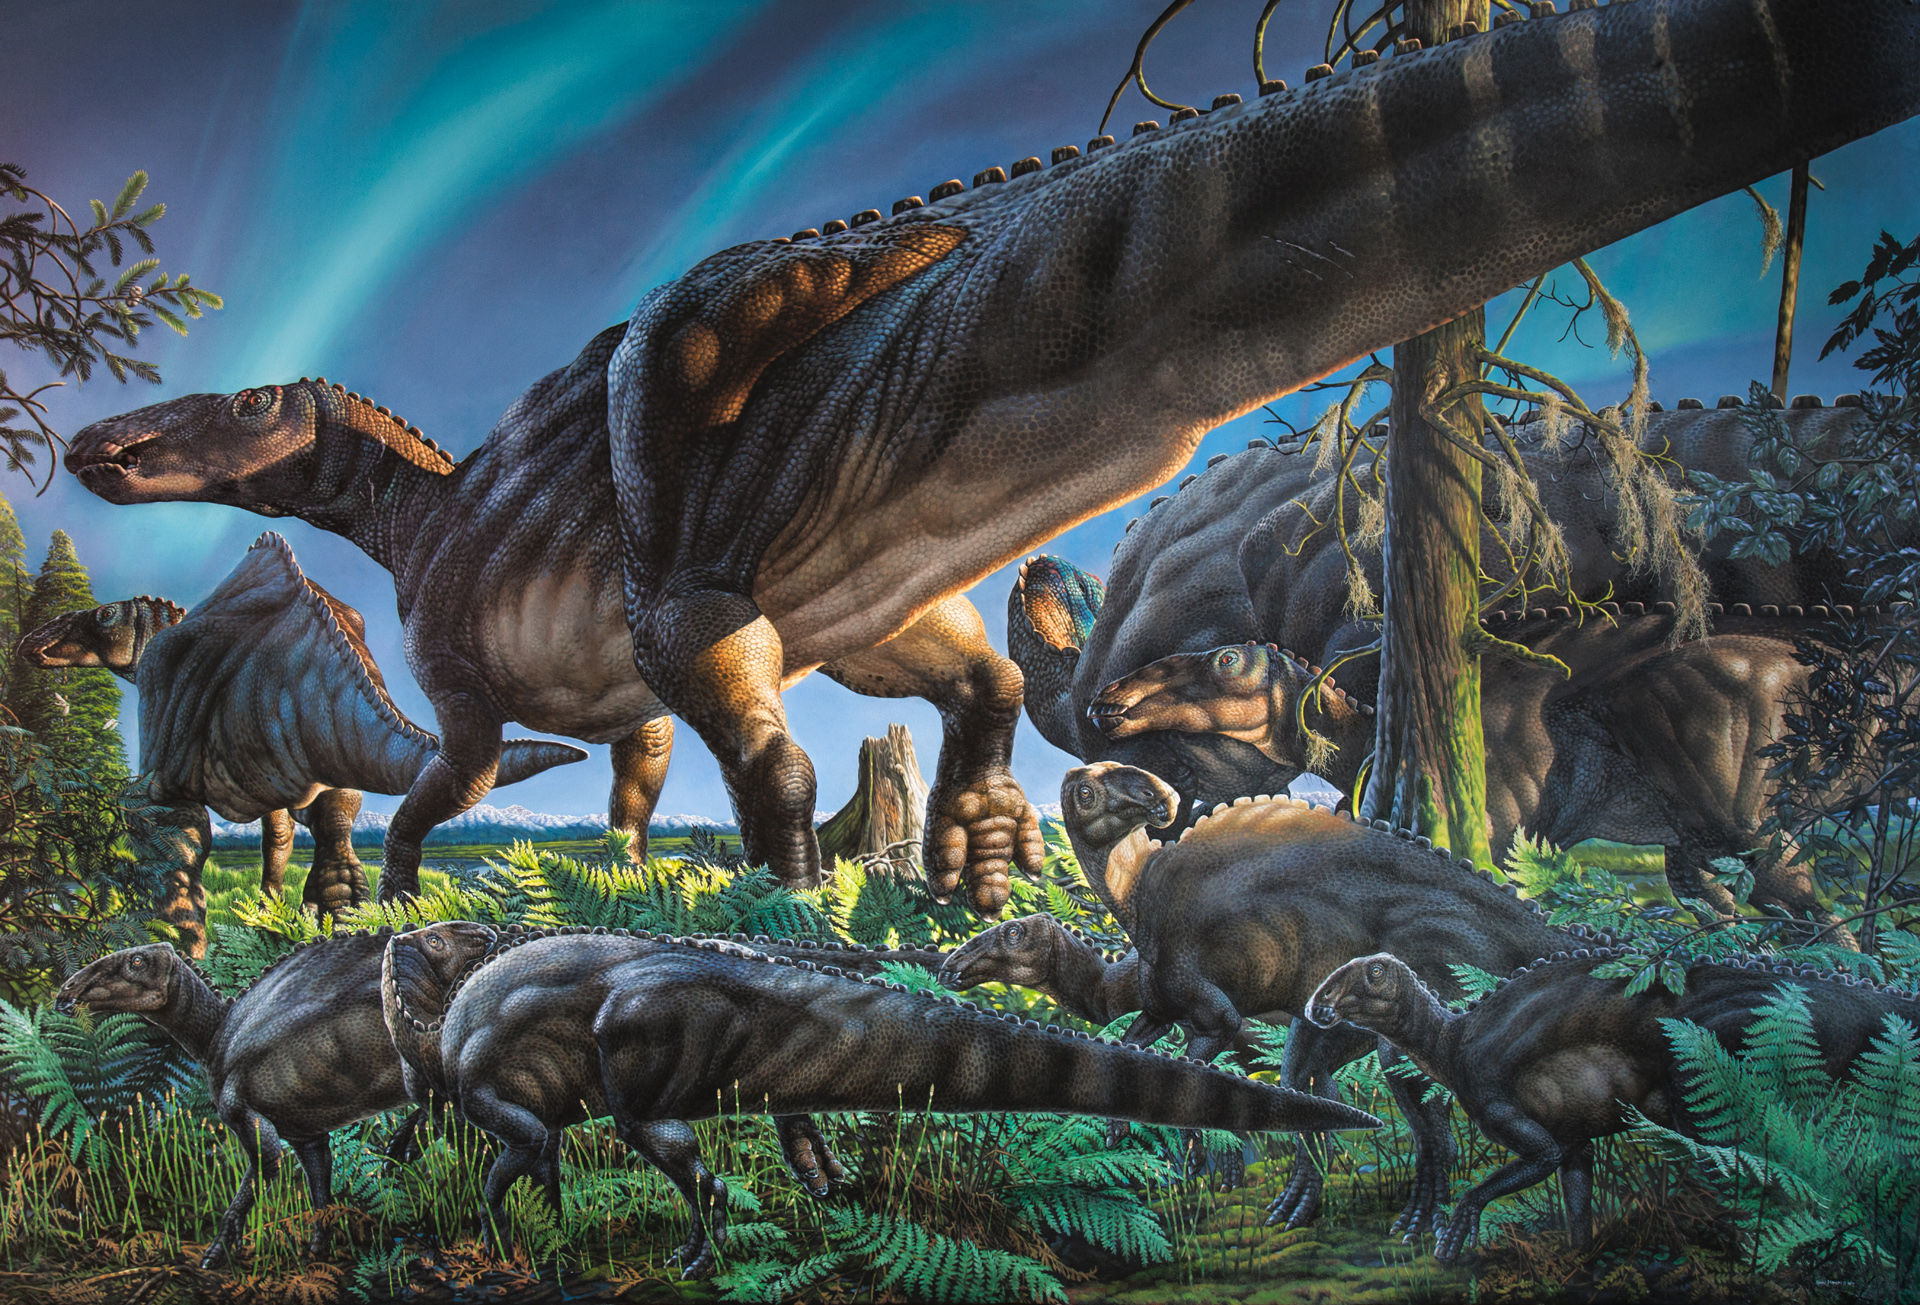 New dinosaur species discovered on Alaska's North Slope